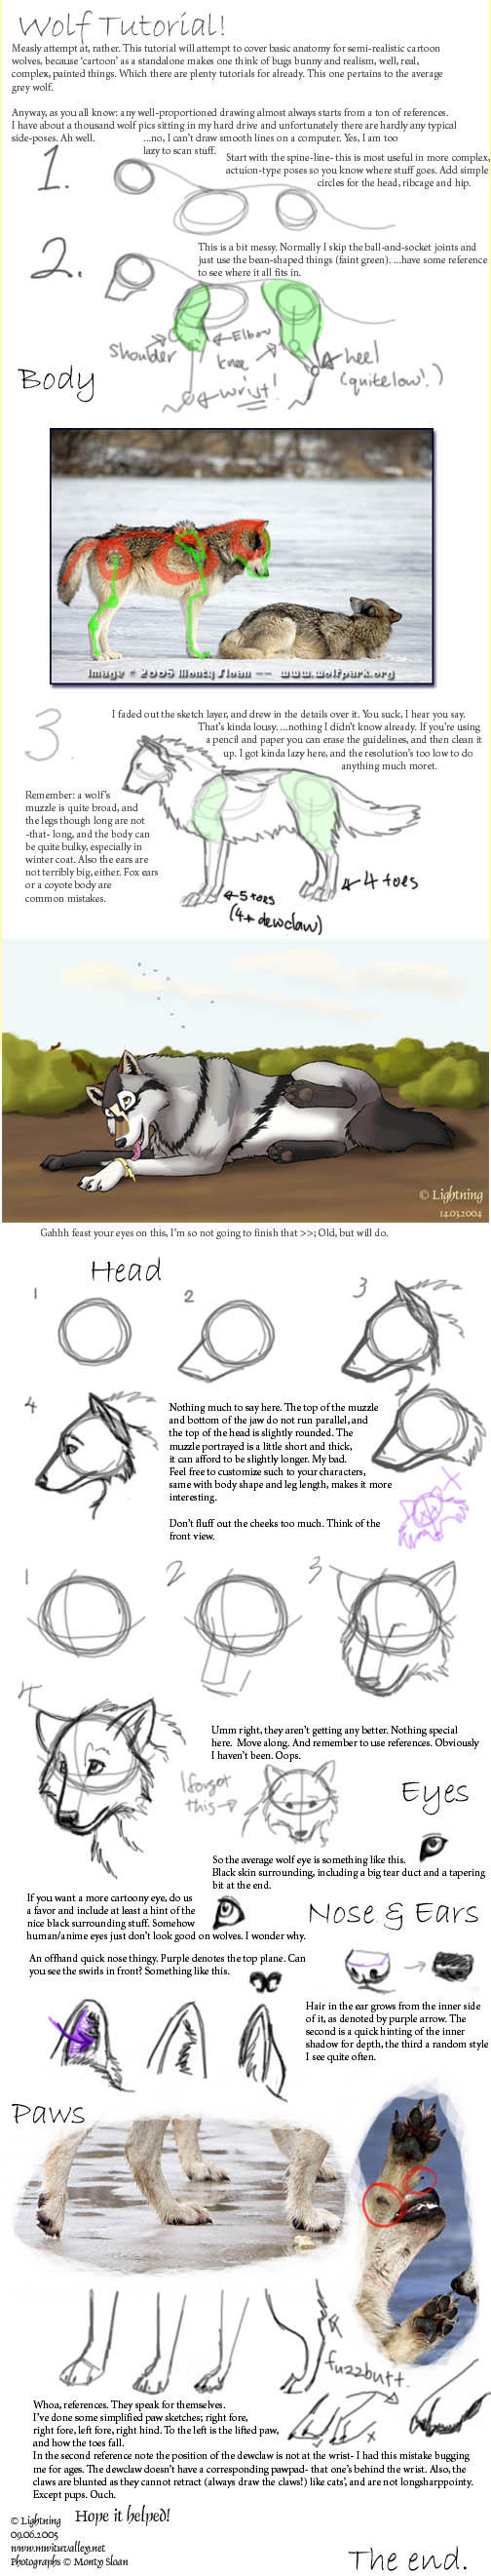 Wolf Tutorial by blayrd